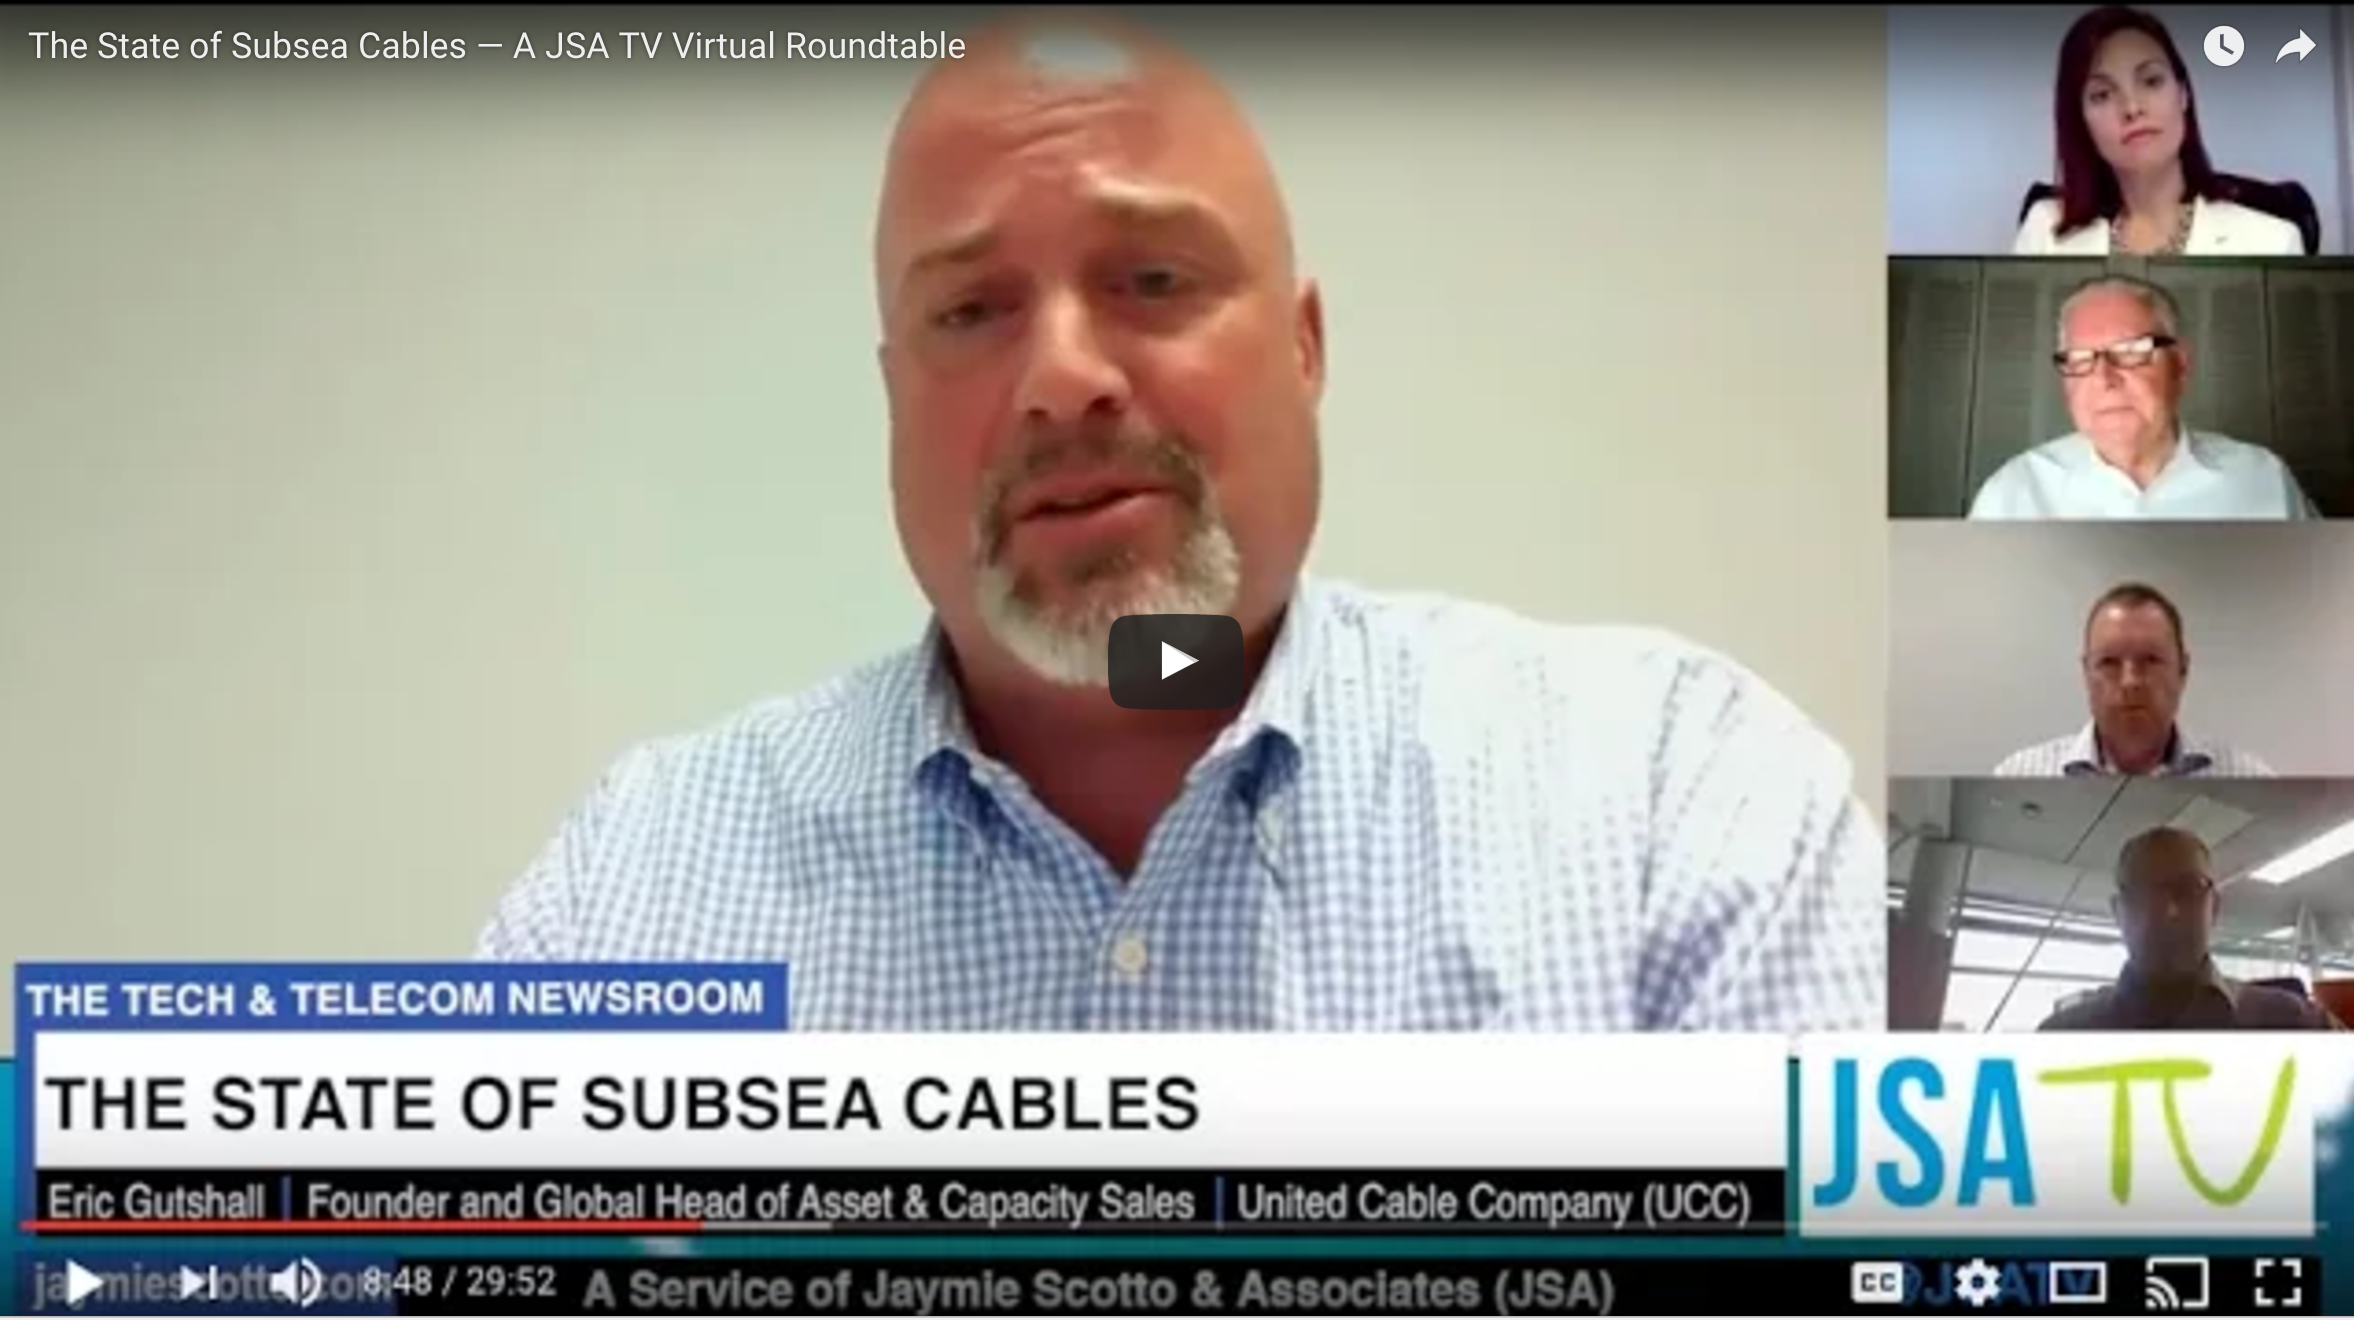 Eric Gutshall of UCC Moderates a Roundtable on the State of Subsea Cables